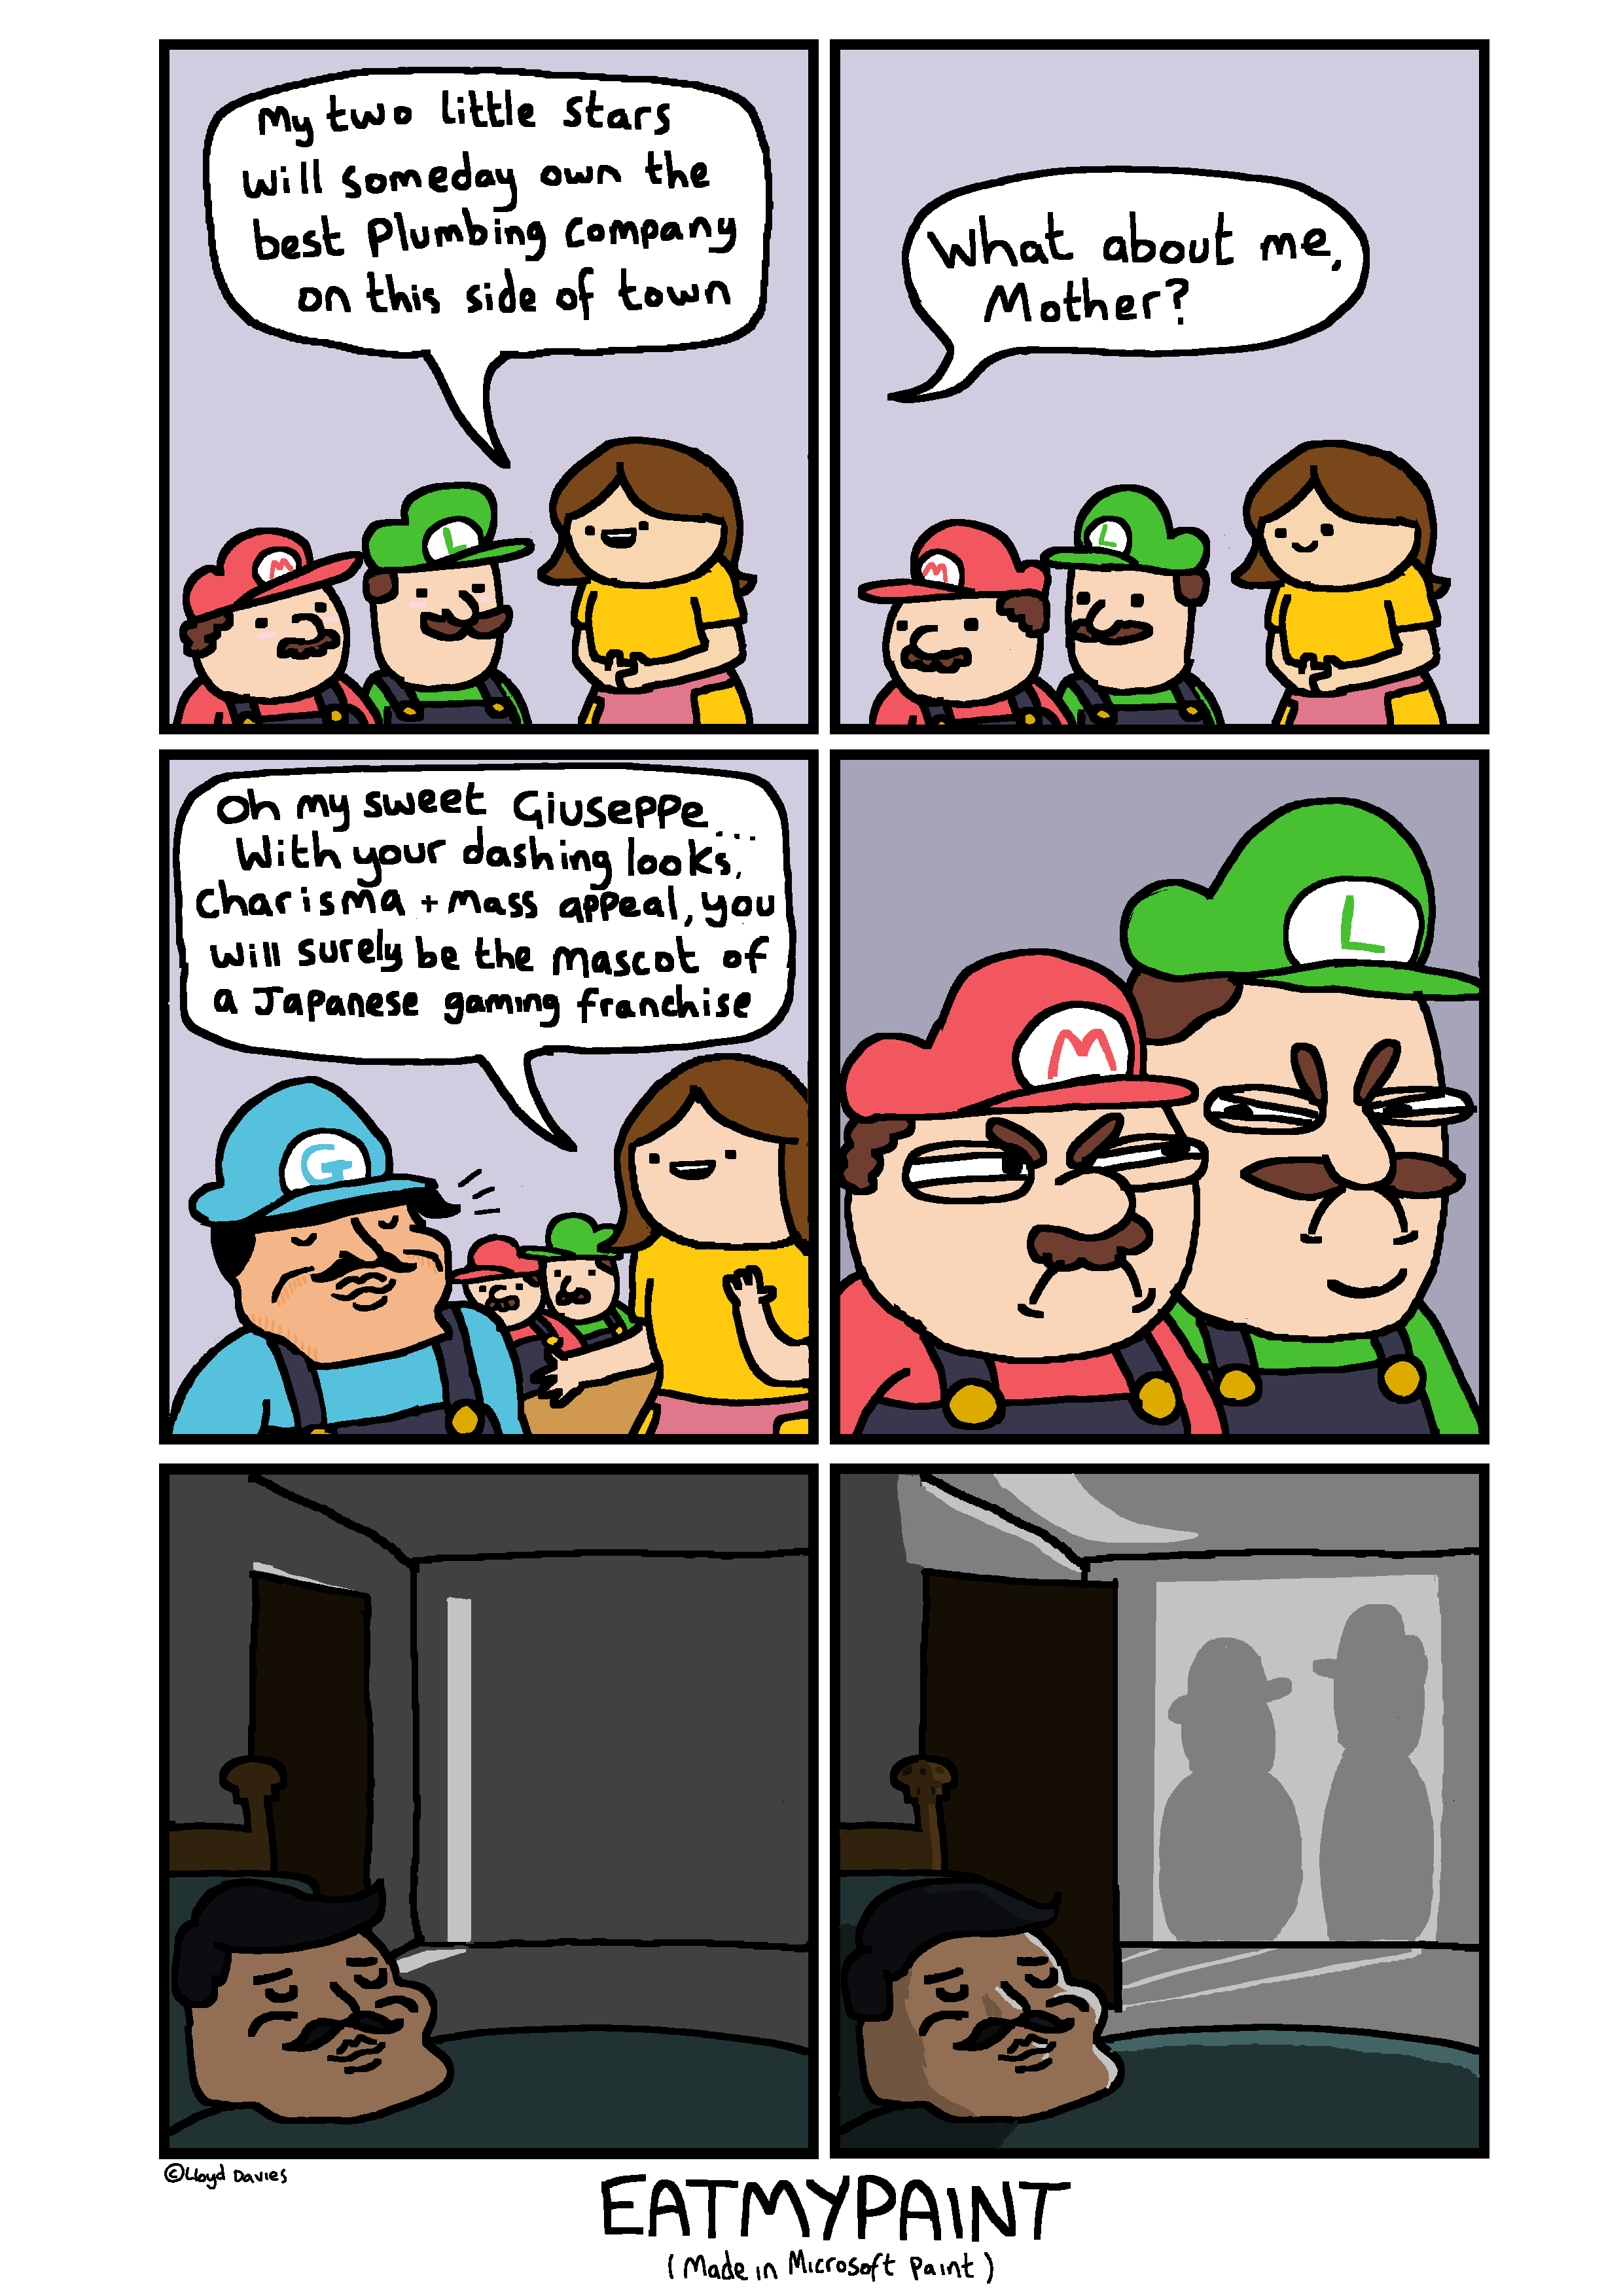 It was at this point, Mario's & Luigi's endless appetite for murder began.